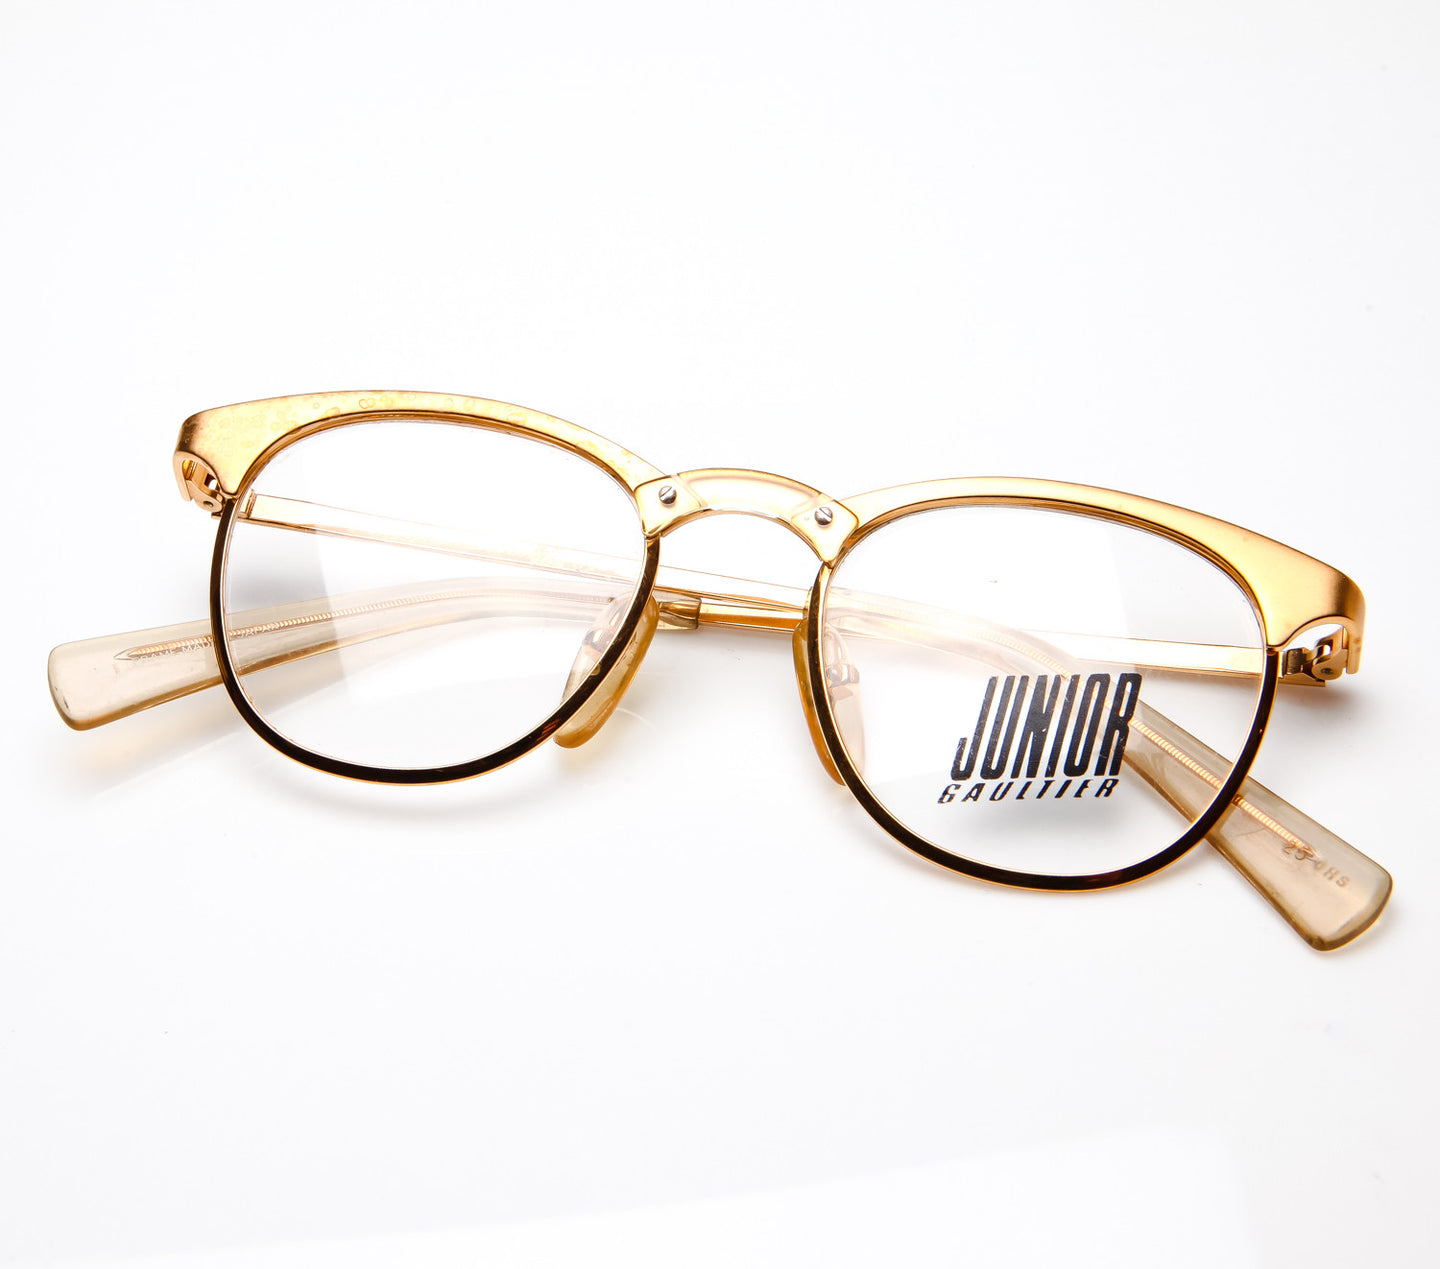 Jean Paul Gaultier Junior 57 0175